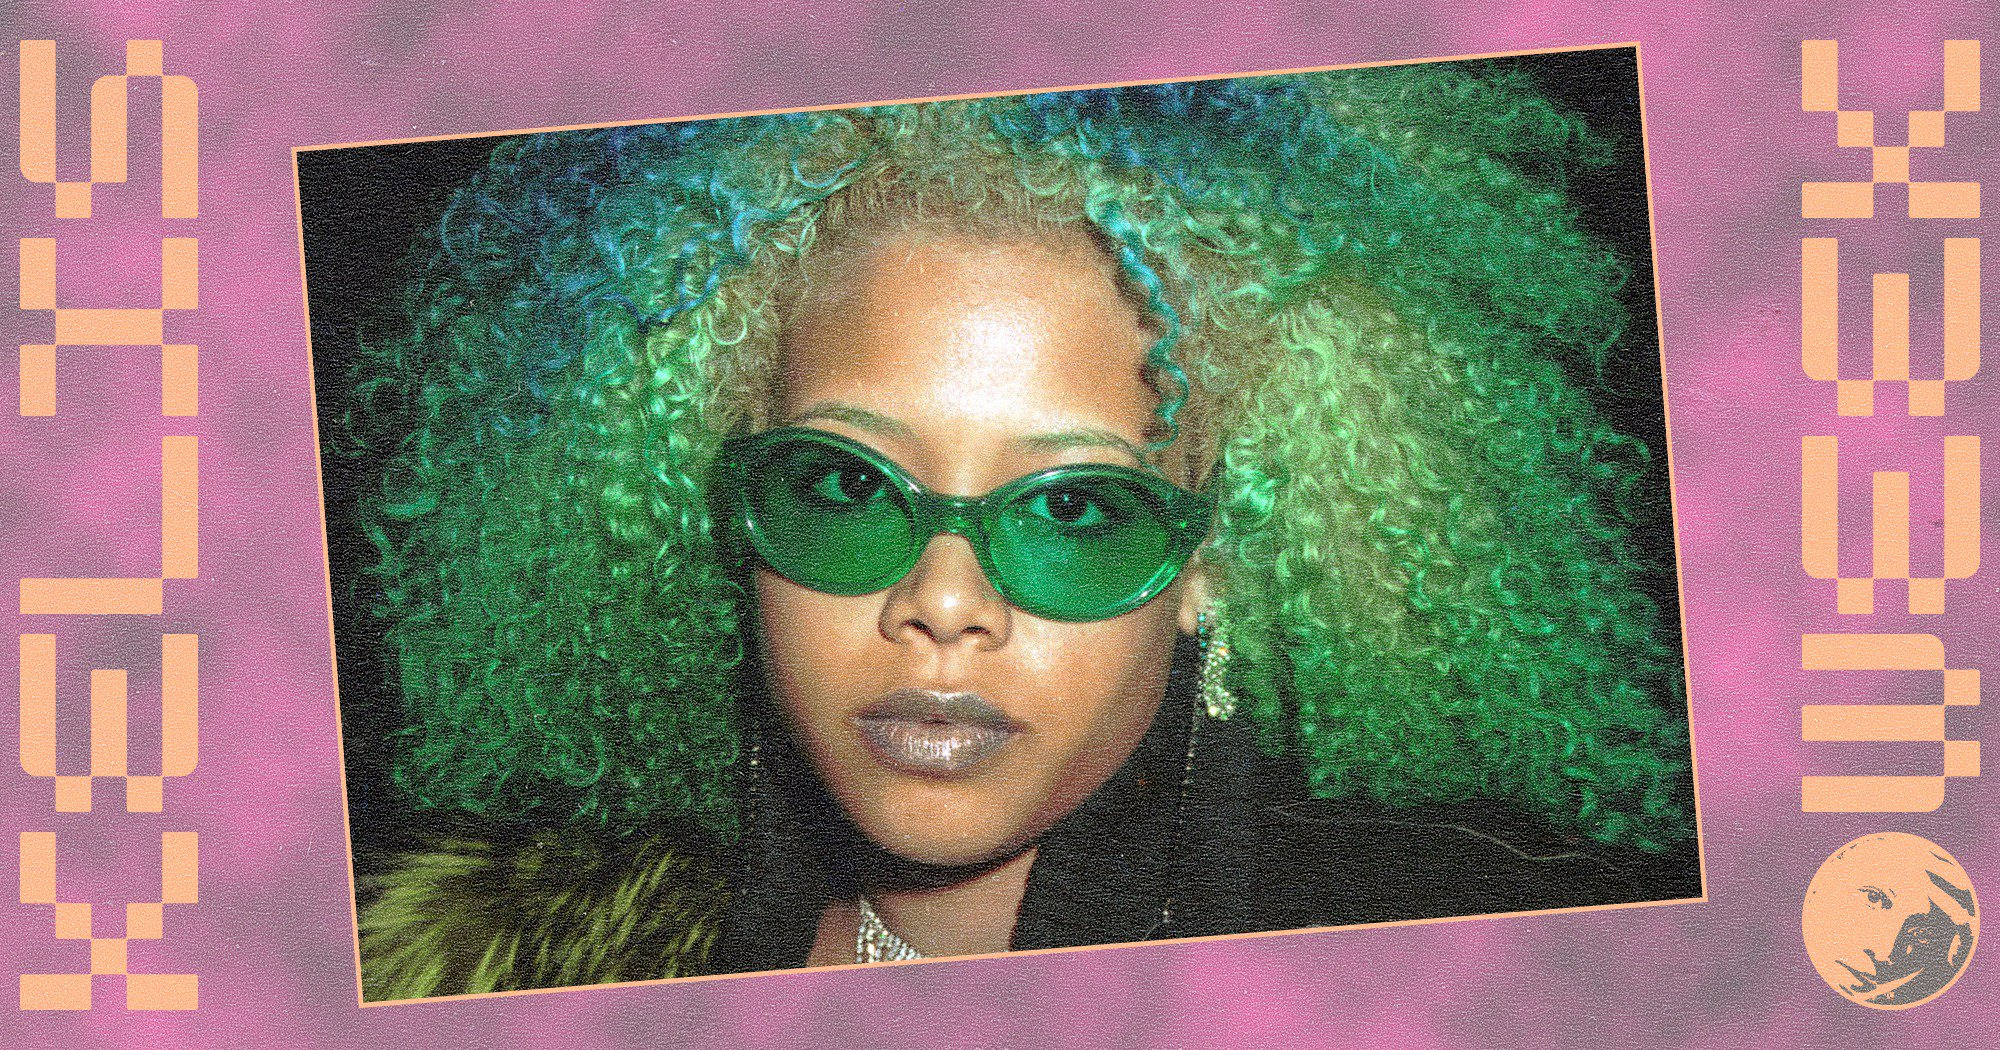 7 iconic @kelis looks to remind you she's always been ahead of the curve. #KelisWeek https://t.co/jFpDrmvZi8 https://t.co/XI7hfkDoYF